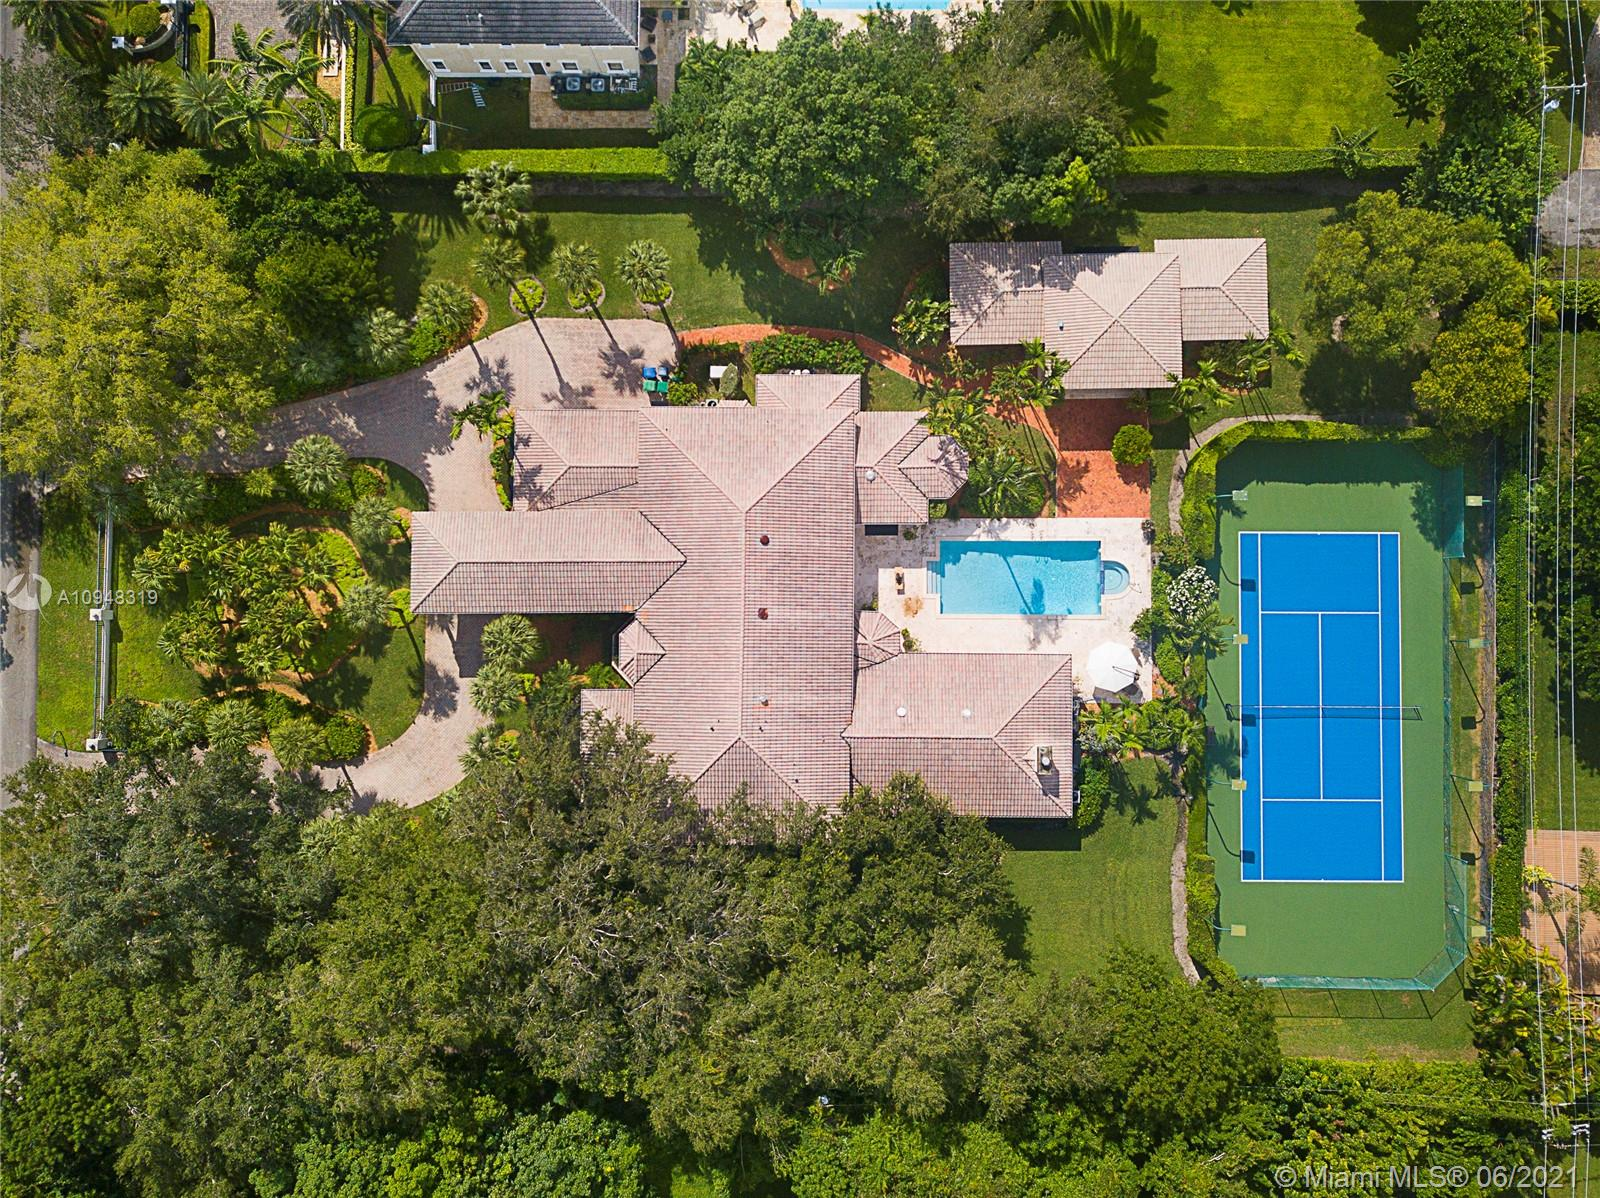 Situated on a prestigious street in Pinecrest, find this custom-built home that sits on a 61,000 sf lot & boasts 8,500+ sf. The impressive home is set back nicely from the street w/ electric gates & circular drive. Enter from its grand porte-cochere to the foyer brilliantly overlooking the formal liv & din areas. Built in 1991 it boasts generous entertaining spaces inside & out, high ceilings, built ins, all impact glass, lit tennis ct, 5 BR+ office inside & 2 outside BRs as part of pool house w/ summer kit, oversized fam rm w/ wet bar, plantation shutters & too much more to mention. Outdoor covered spaces serve as add'l liv areas. Gracious principal suite w/ sitting area, updated bath w/ double vanity, freestanding tub, large shower, dressing rm & 2 walk in closets. 3 car gar, laundry rm.